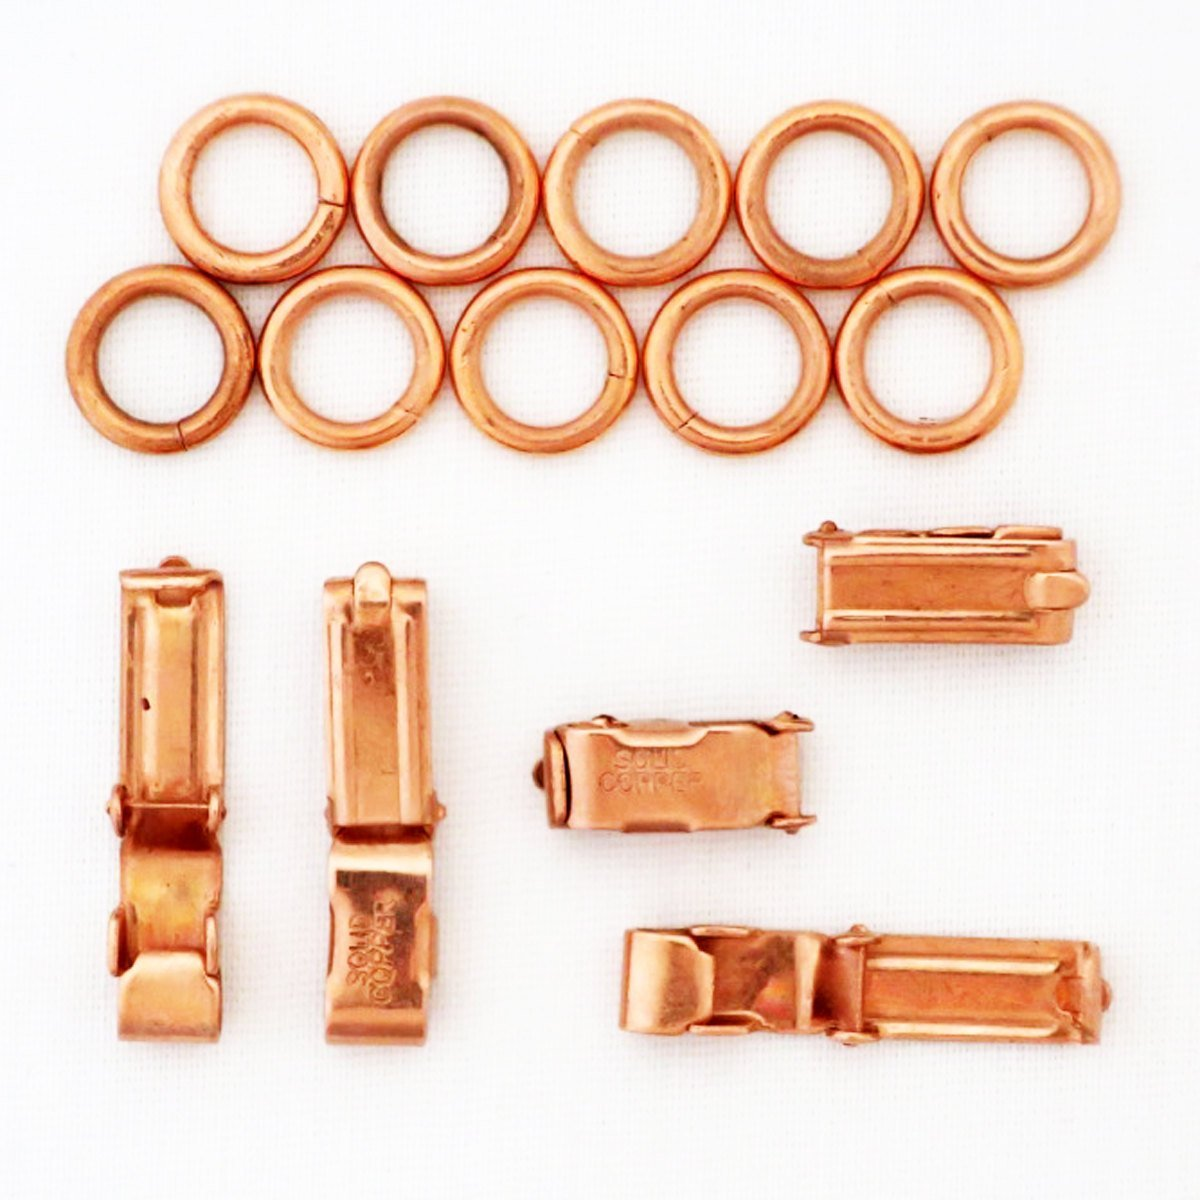 Heavy Fold Over Copper Clasp Repair Kit 6x14 mm Bulk 5-Pack Solid Copper Clasp Kits celtic-copper-jewelry.myshopify.com